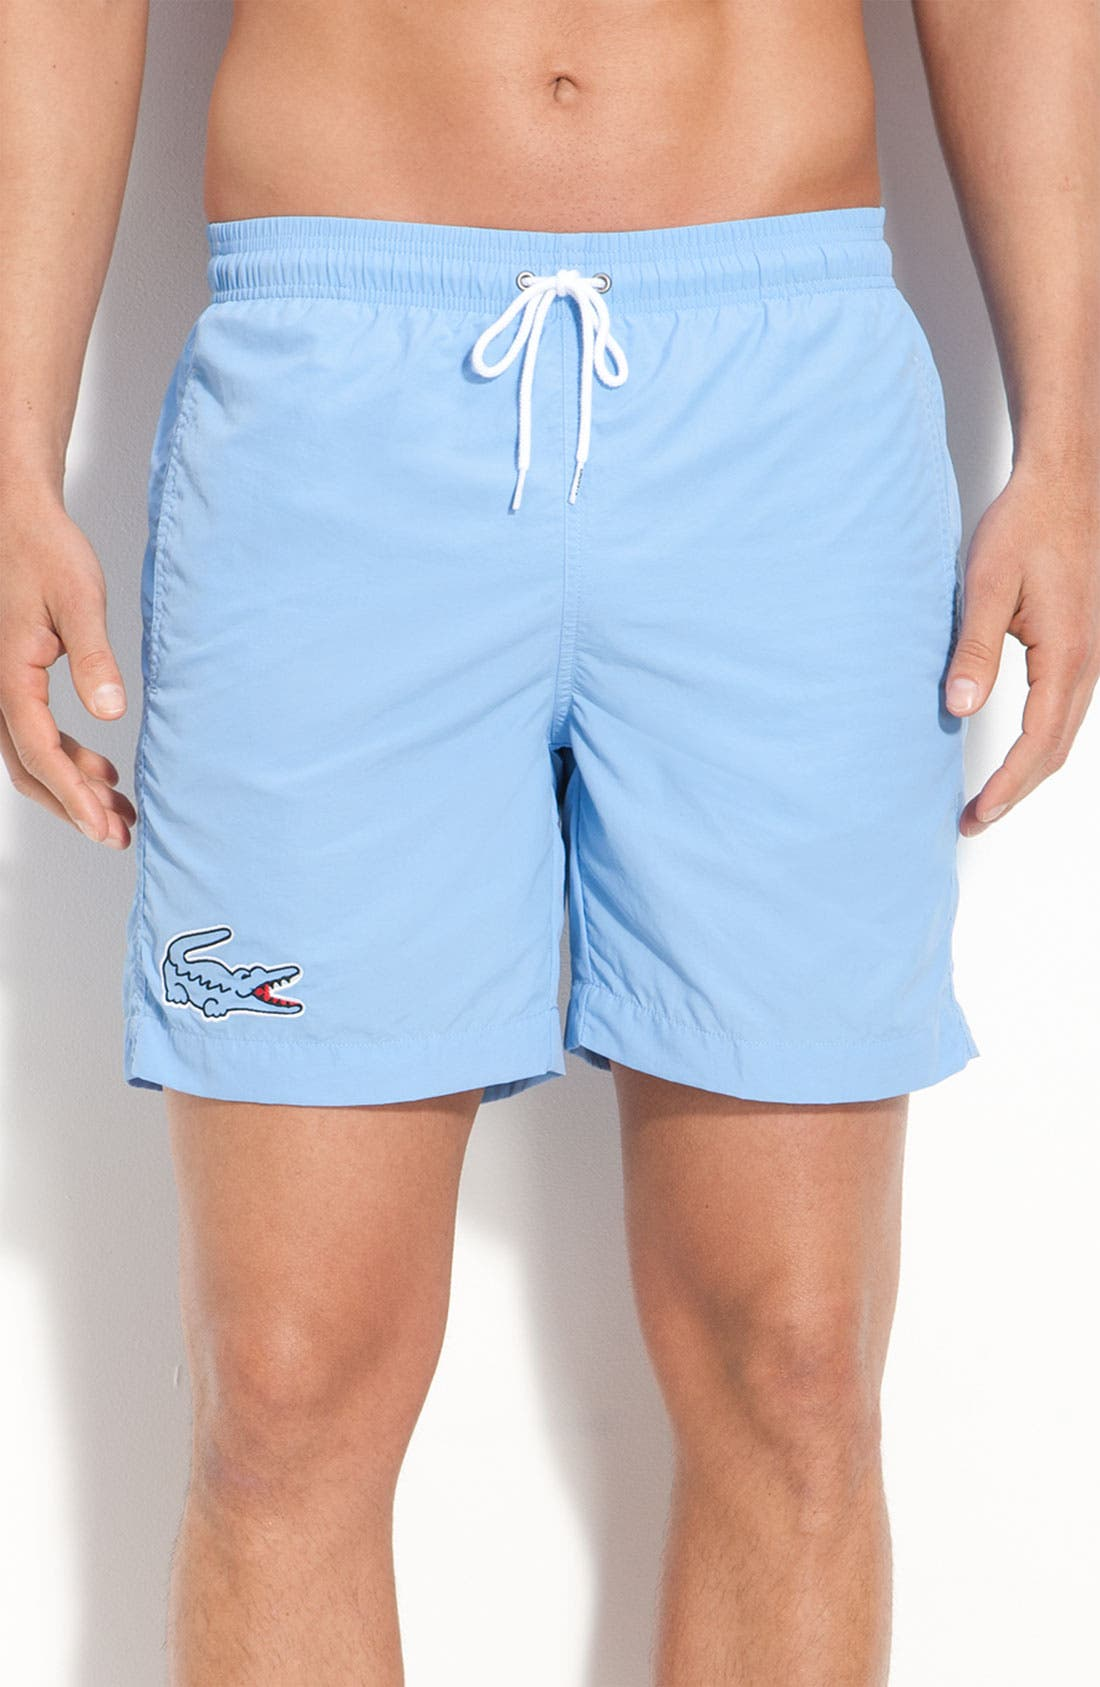 Main Image - Lacoste Swim Trunks (Online Exclusive)